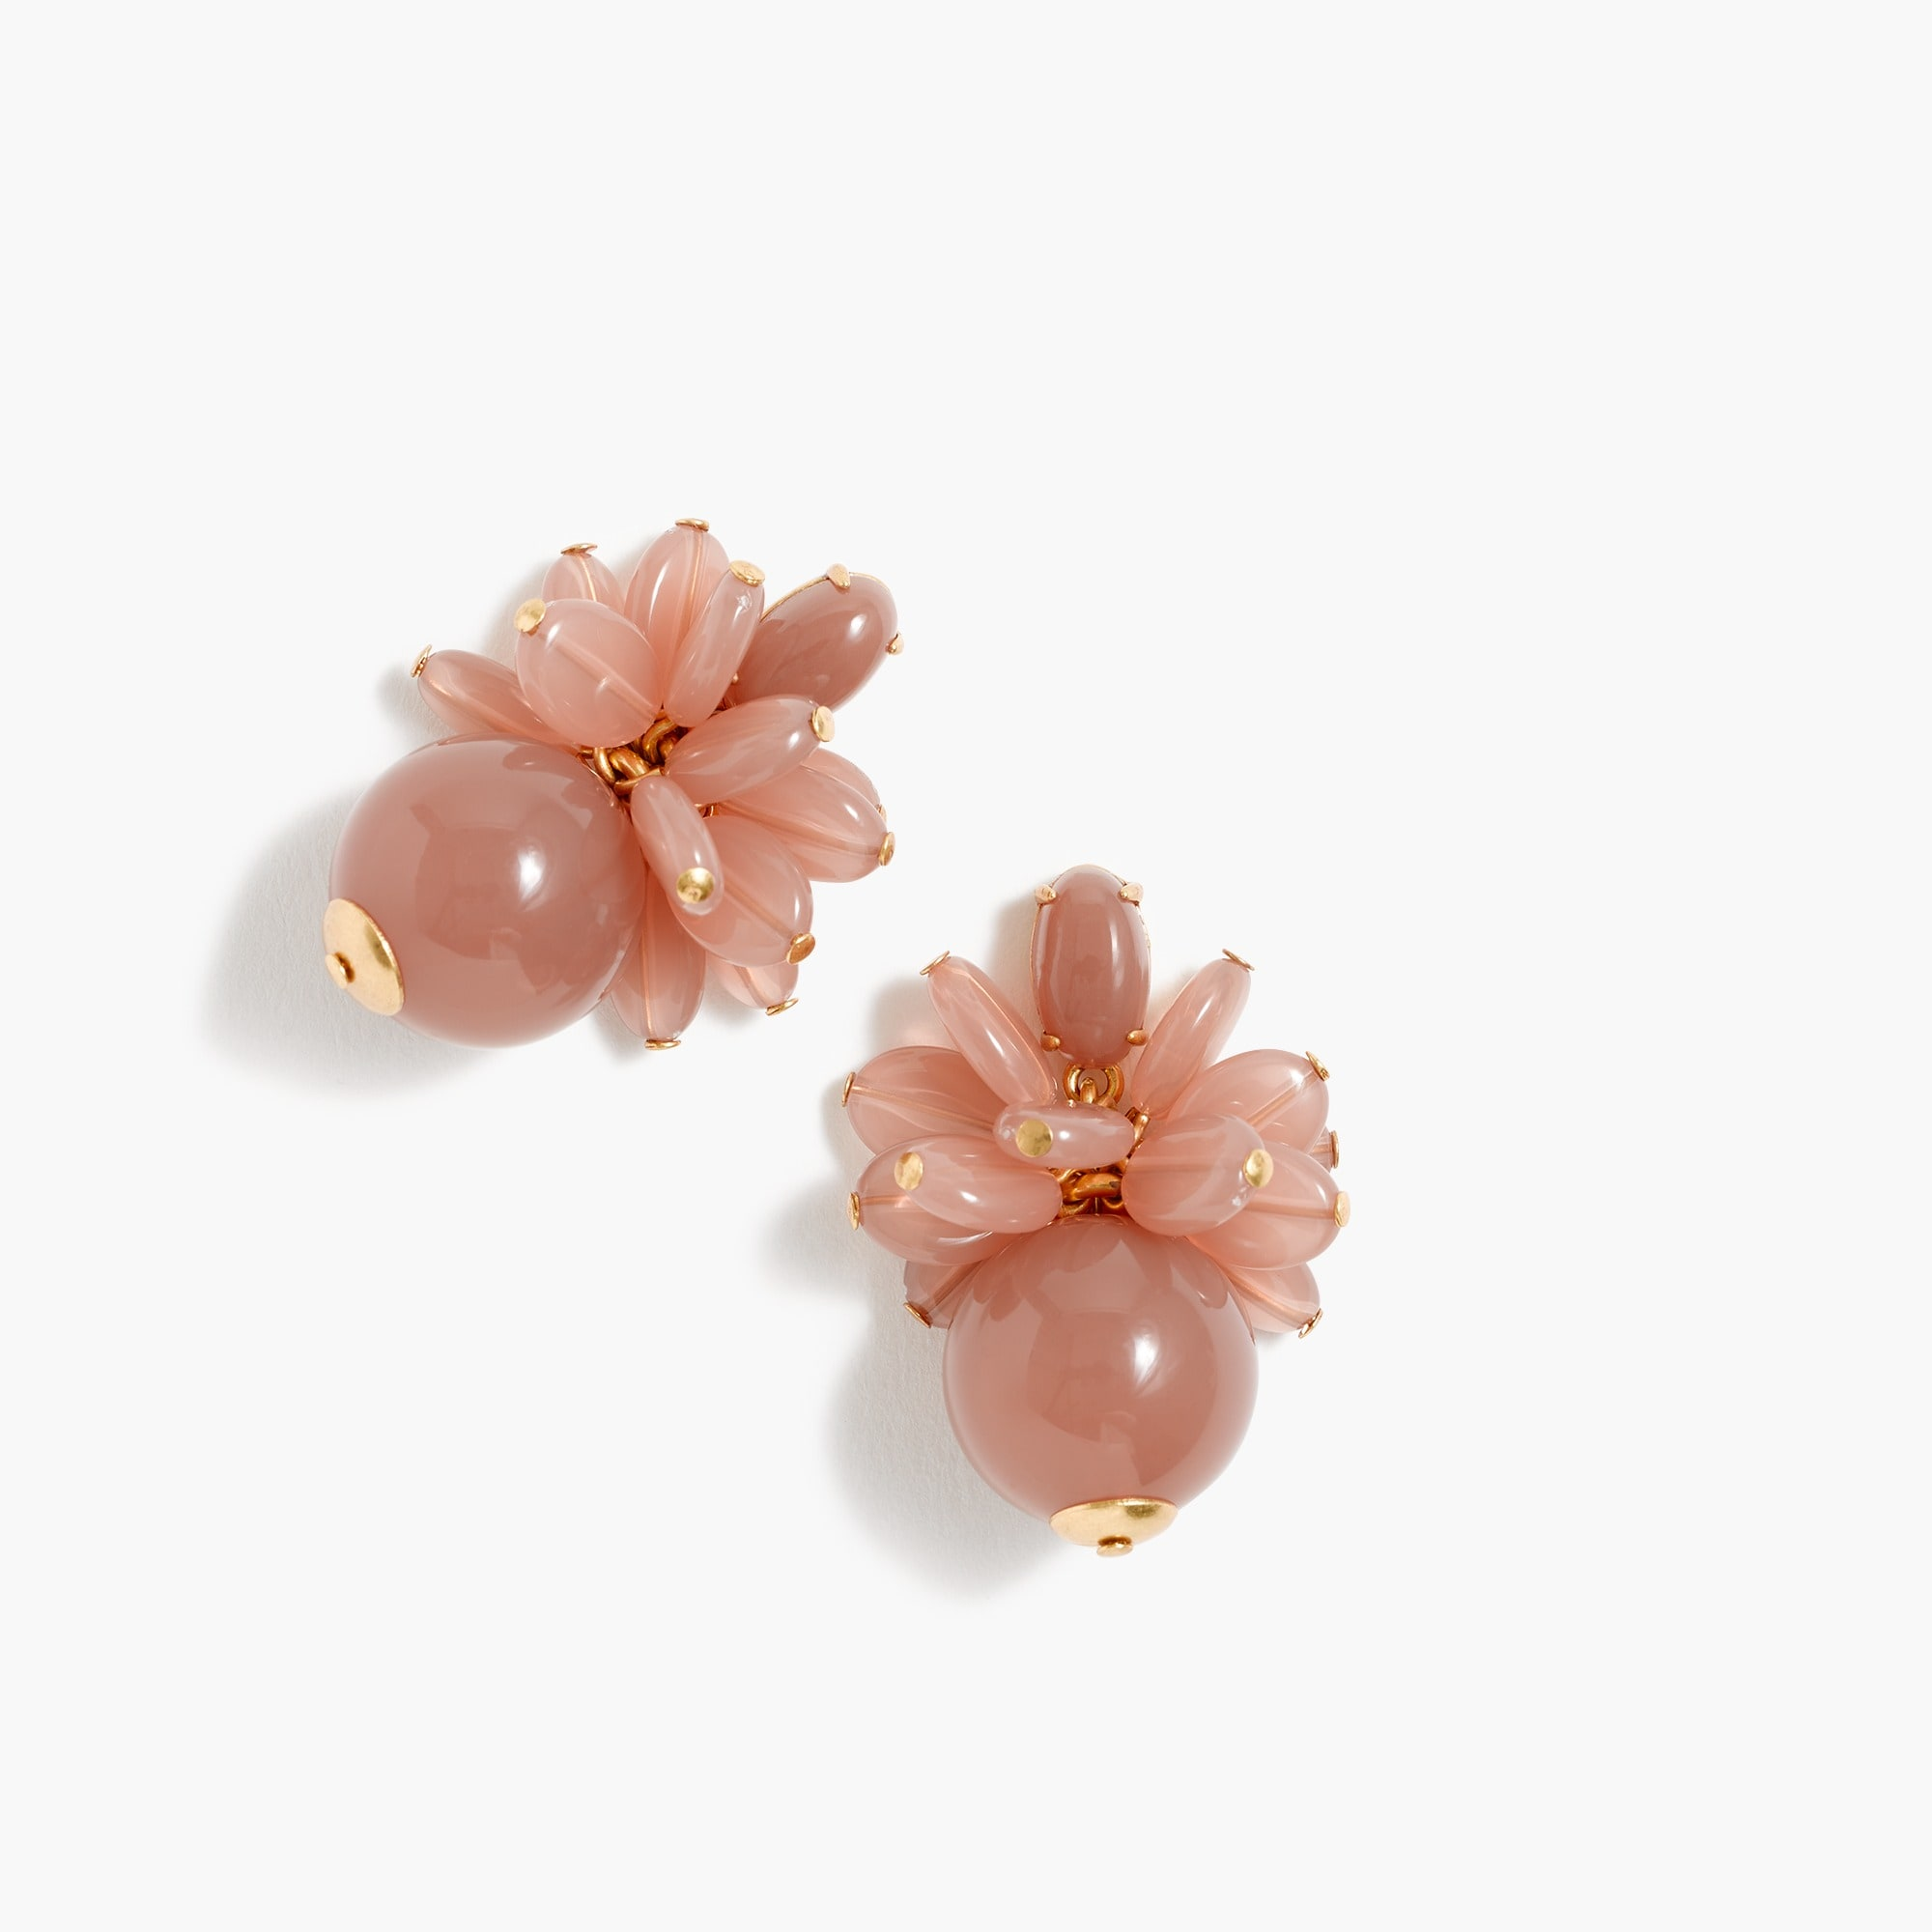 Image 1 for Blossom bauble earrings